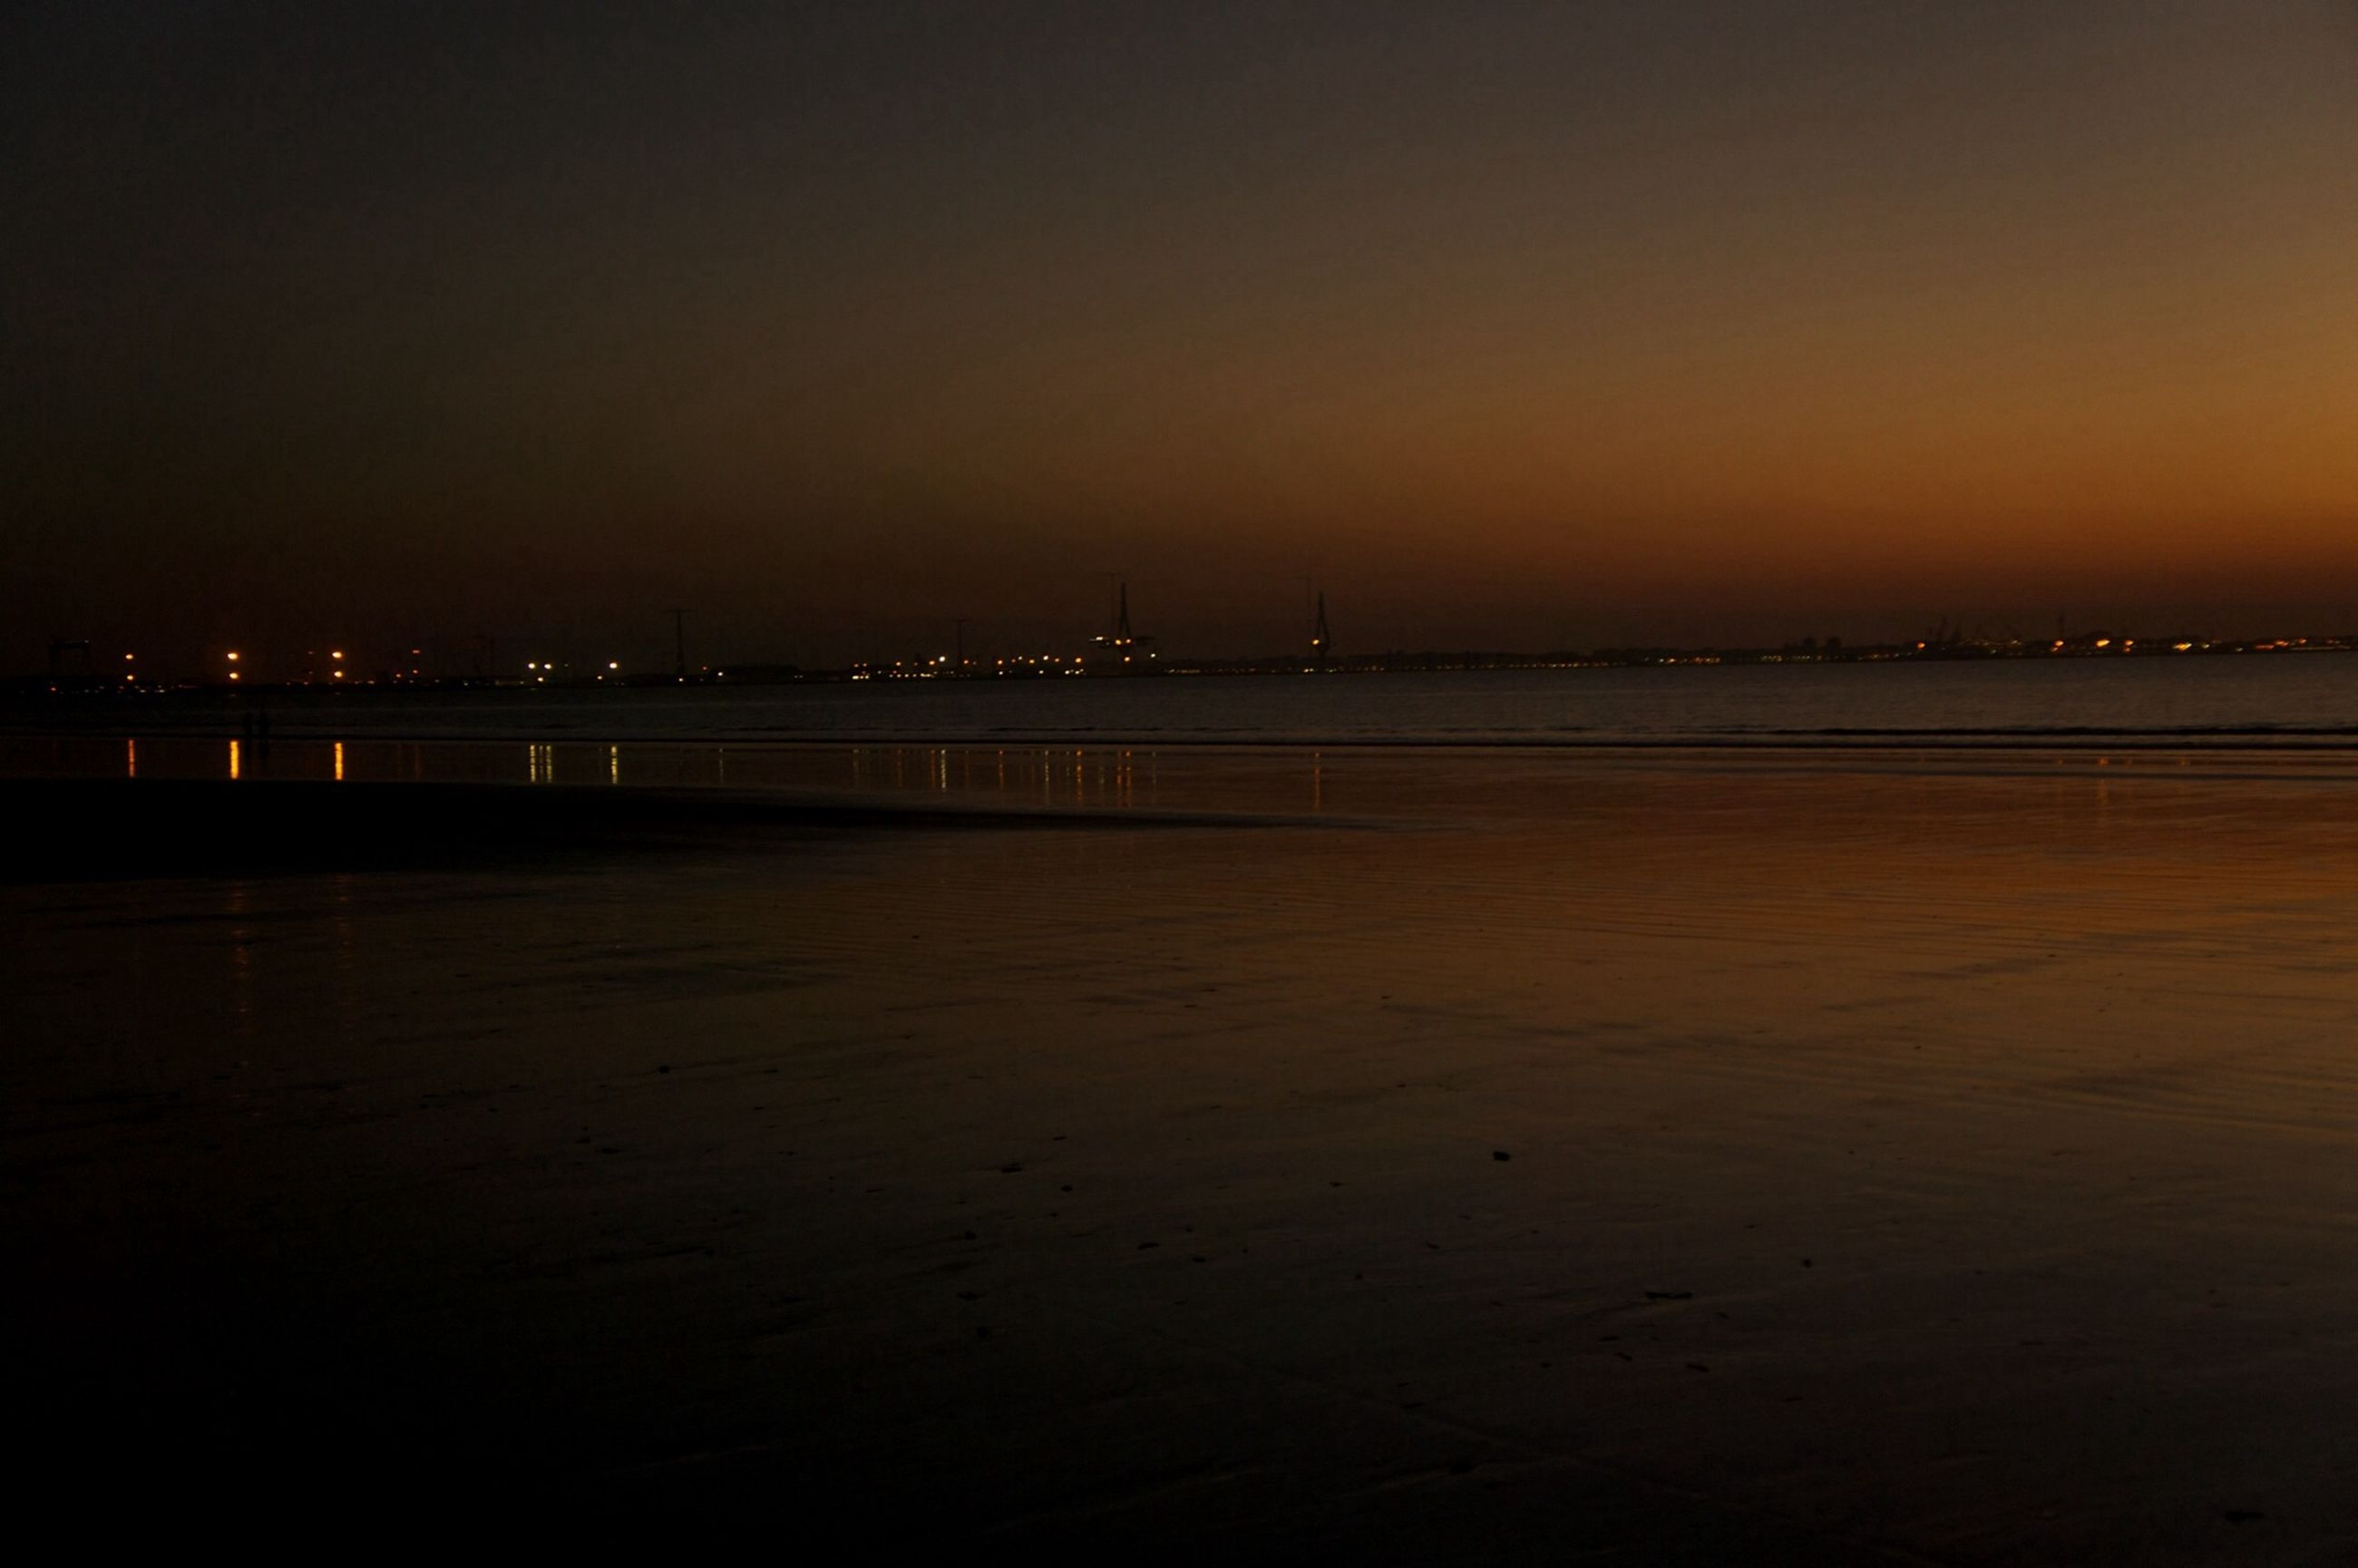 sunset, water, illuminated, silhouette, built structure, copy space, sea, architecture, orange color, beach, dusk, tranquility, night, tranquil scene, scenics, clear sky, bridge - man made structure, connection, sky, nature